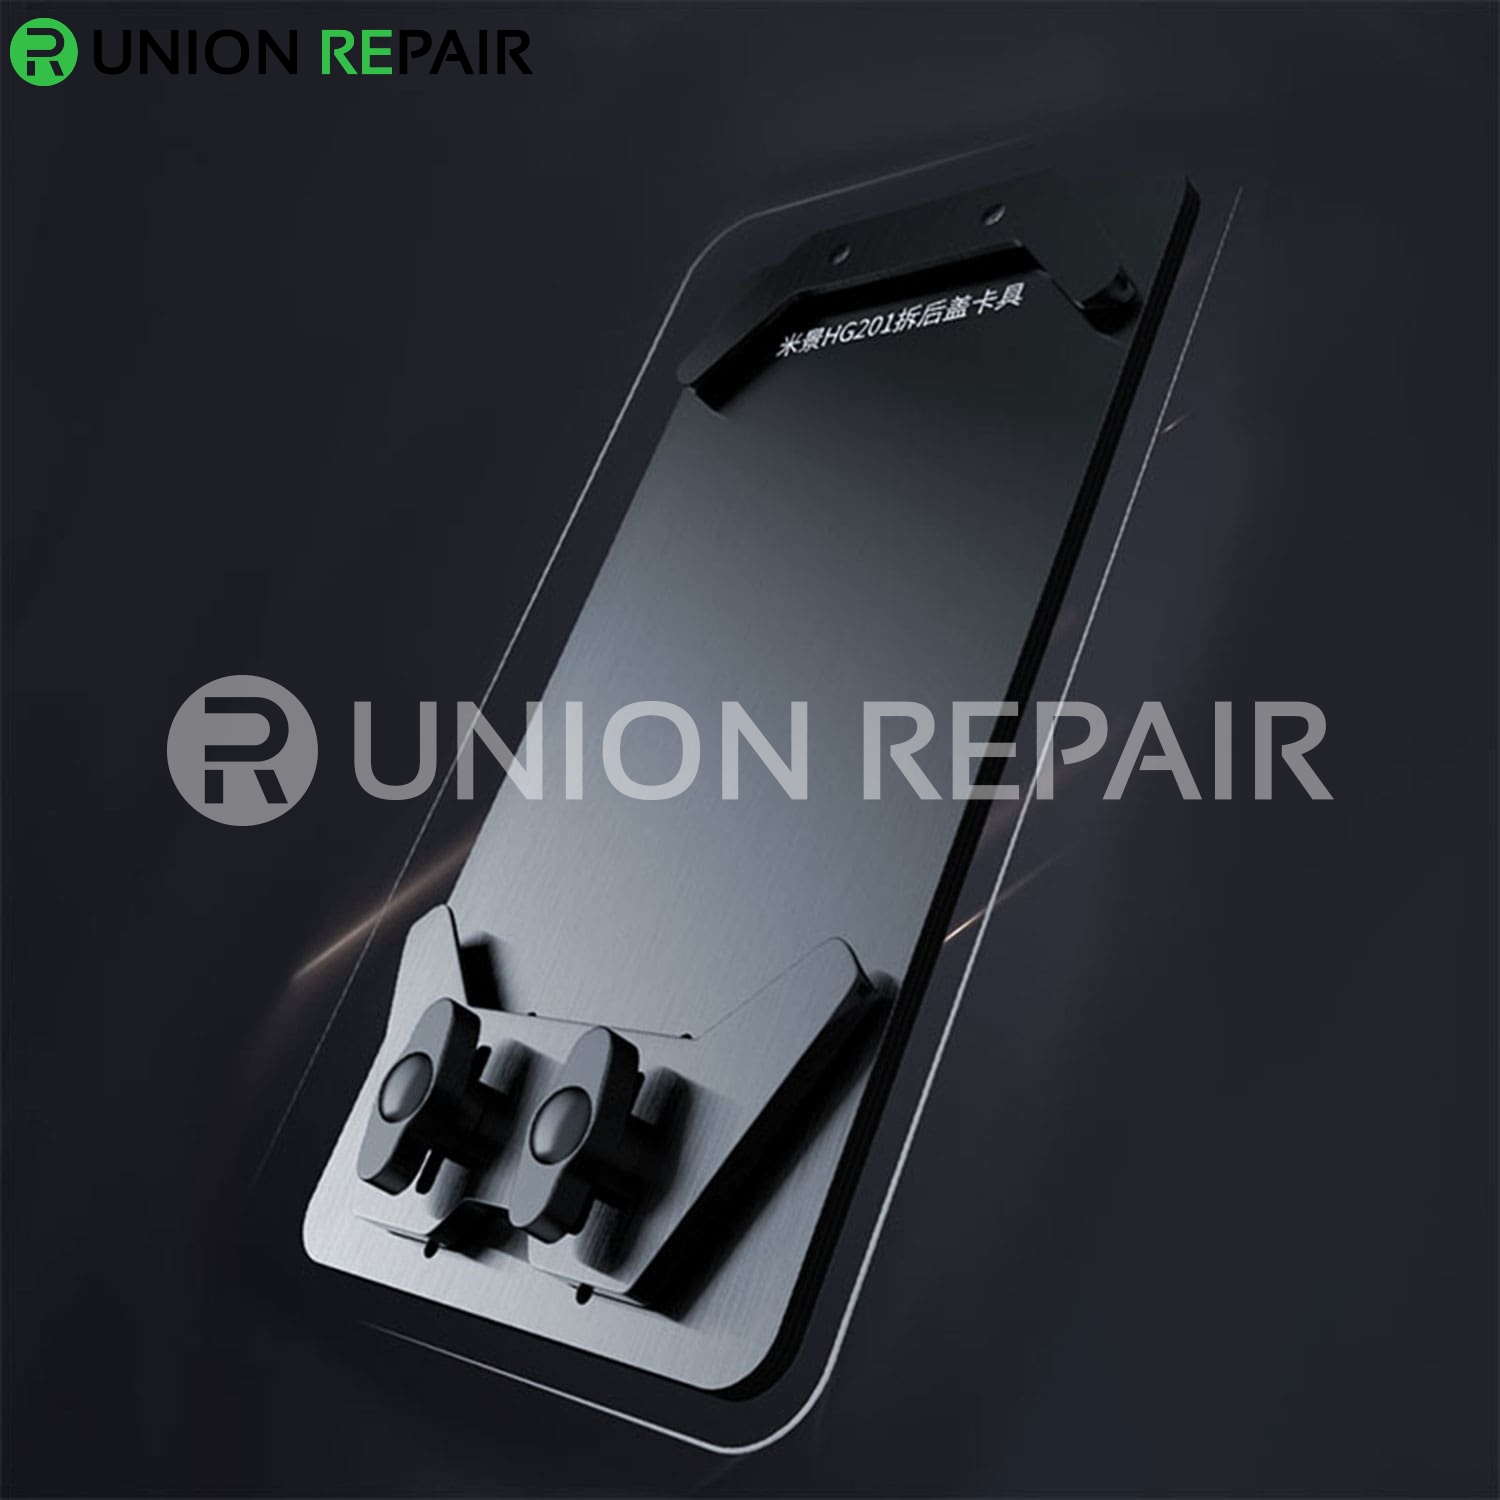 Mijing HG201 Universal Fixture for Phone Removal/Repair Back Cover Glass